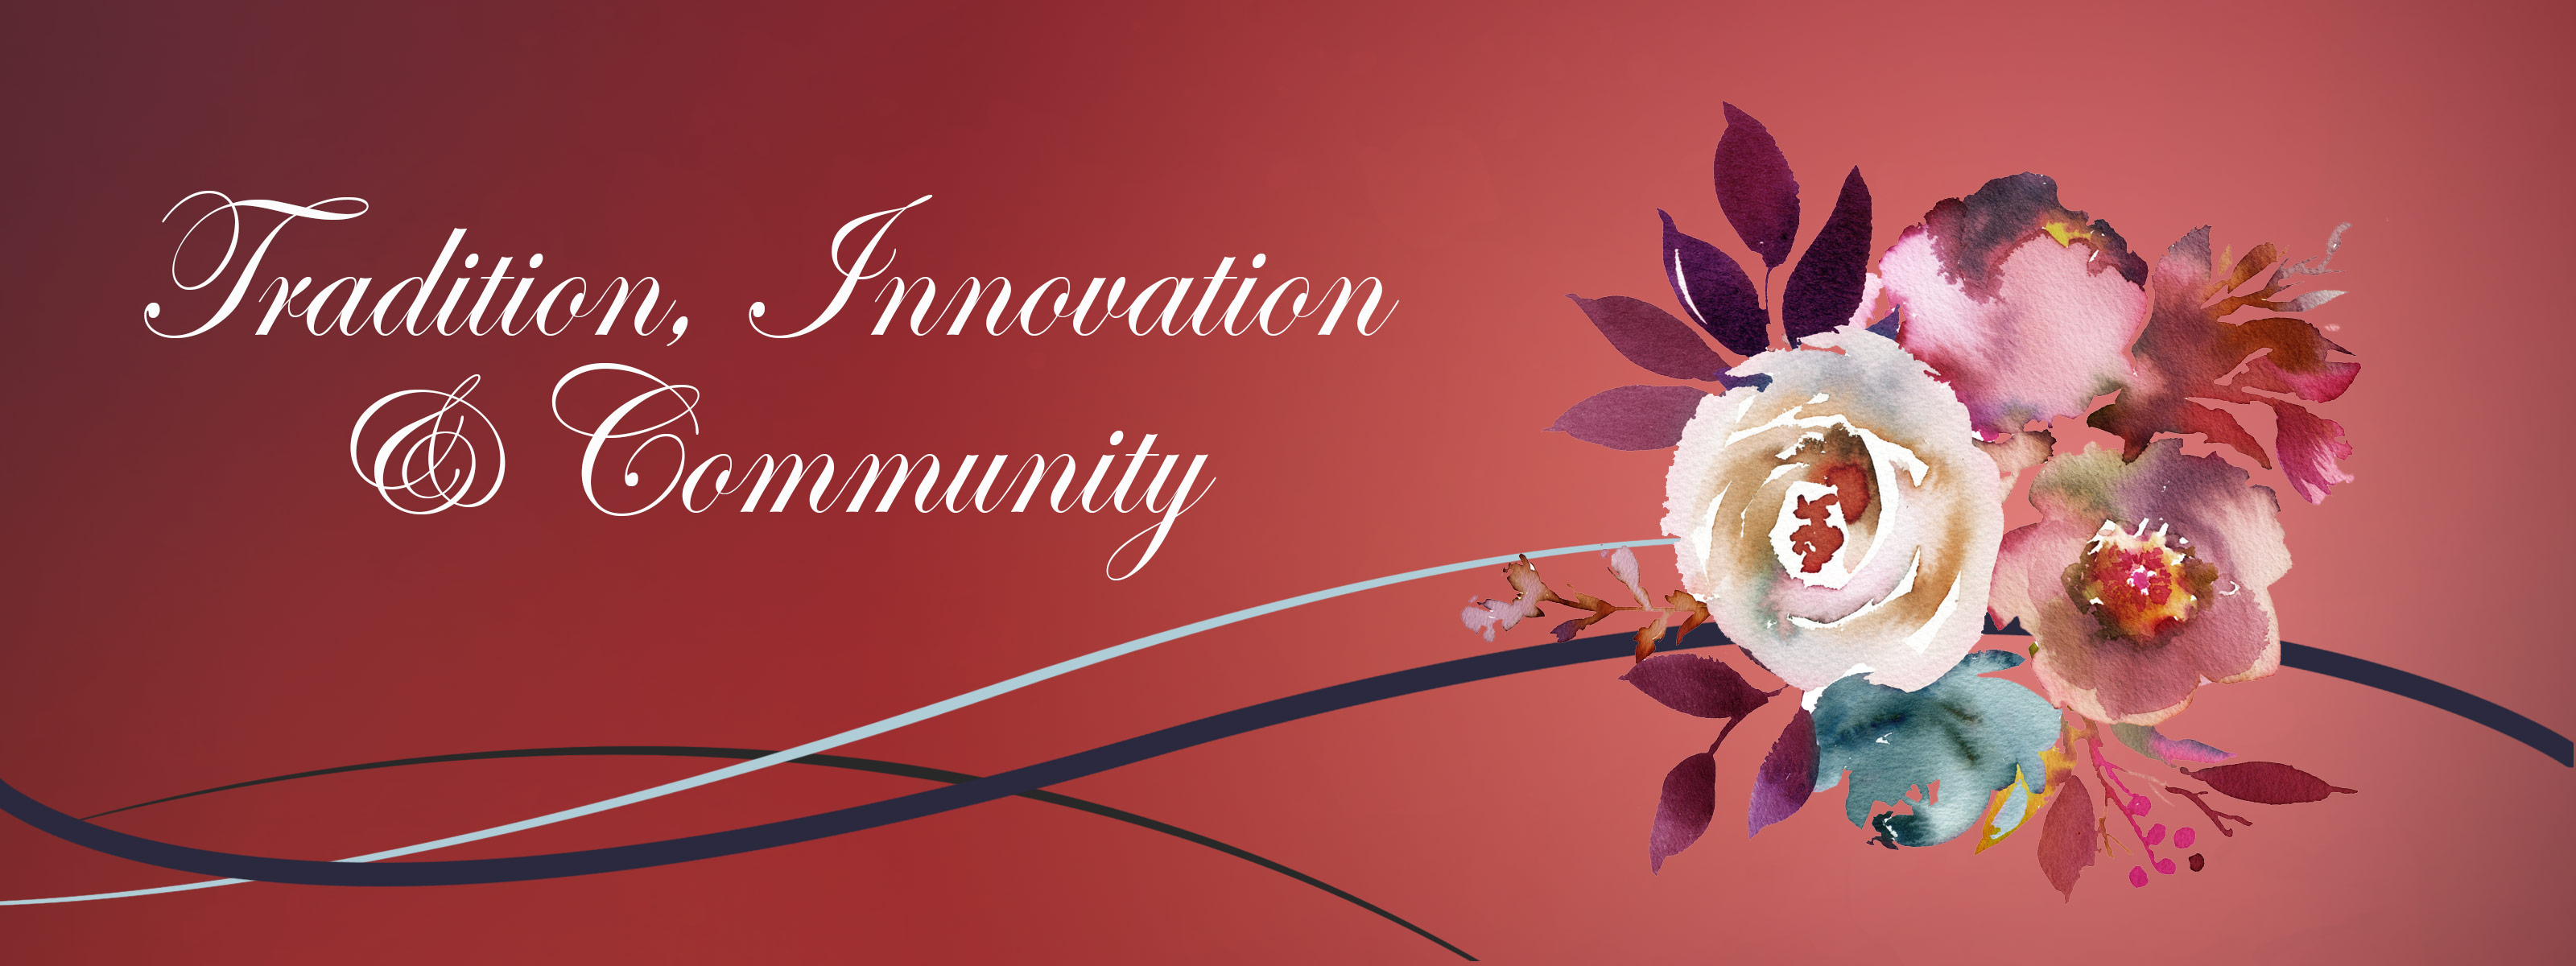 Tradition, Innovation and Community